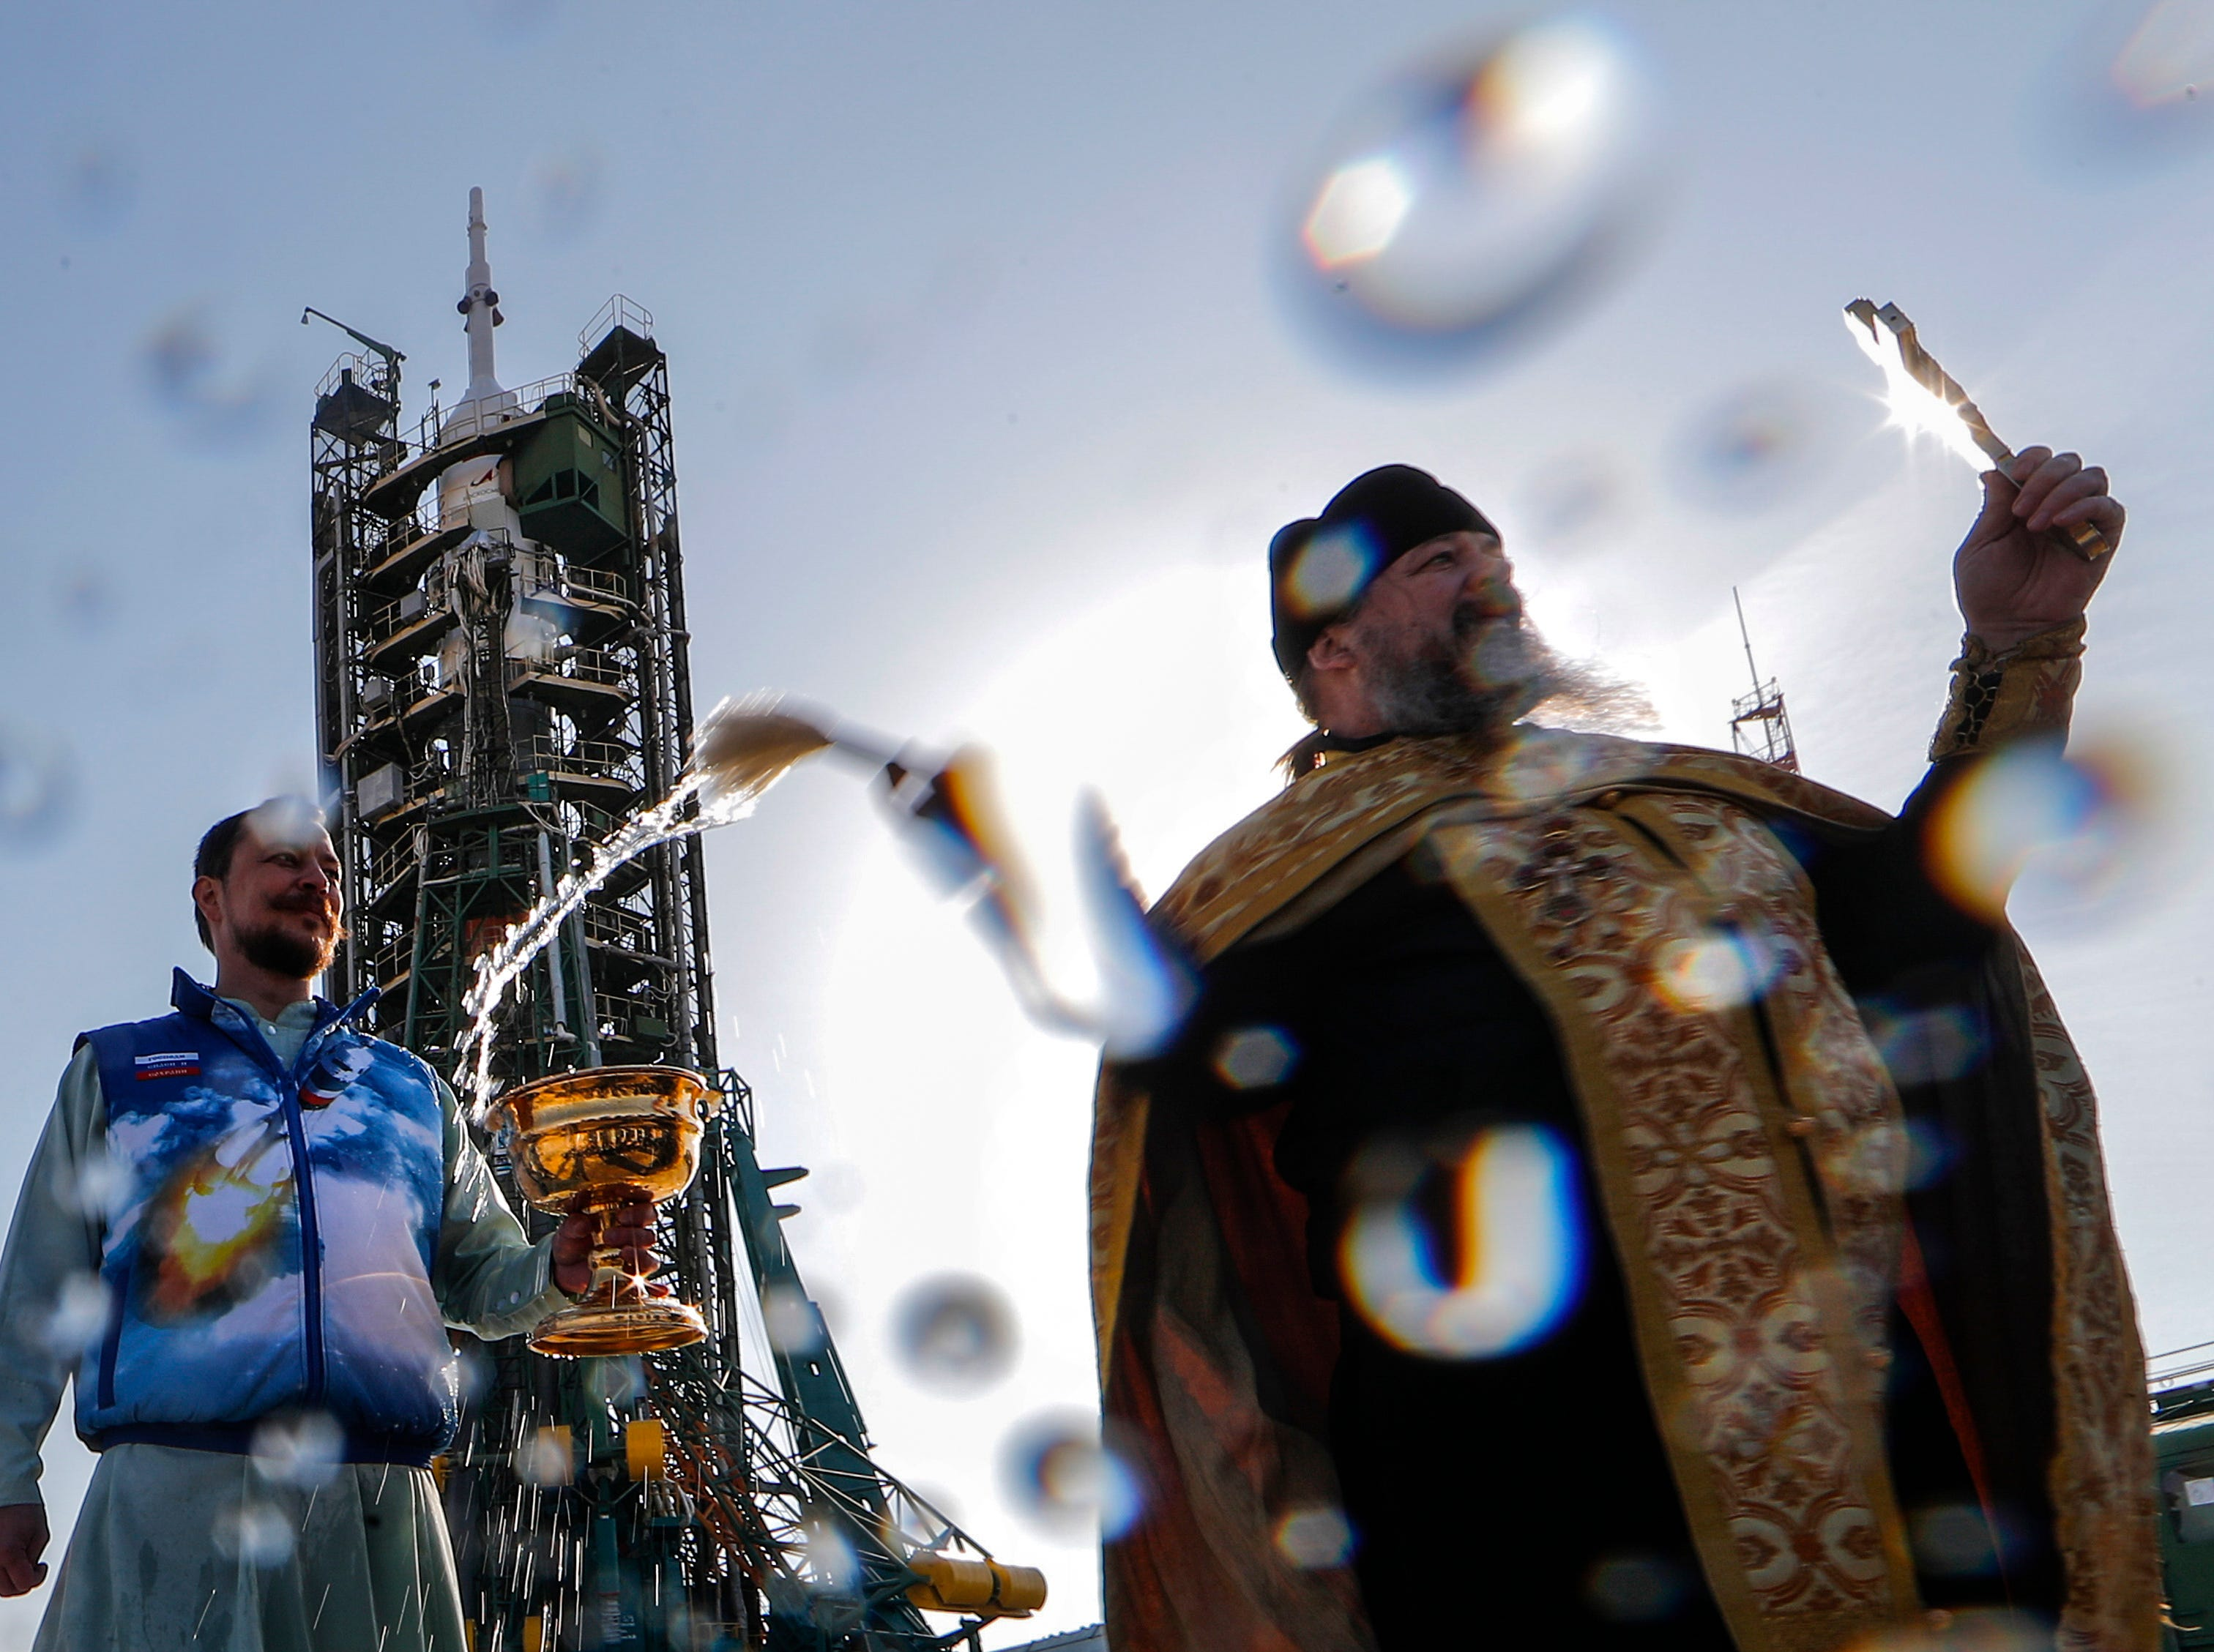 An Orthodox priest blesses the Russian Soyuz MS-12 spacecraft on the launch pad at the Baikonur Cosmodrome, Kazakhstan, 14 March 2019. Russian cosmonaut Alexey Ovchinin, NASA astronauts Christina Koch and Nick Hague will launch March 14, 2019.